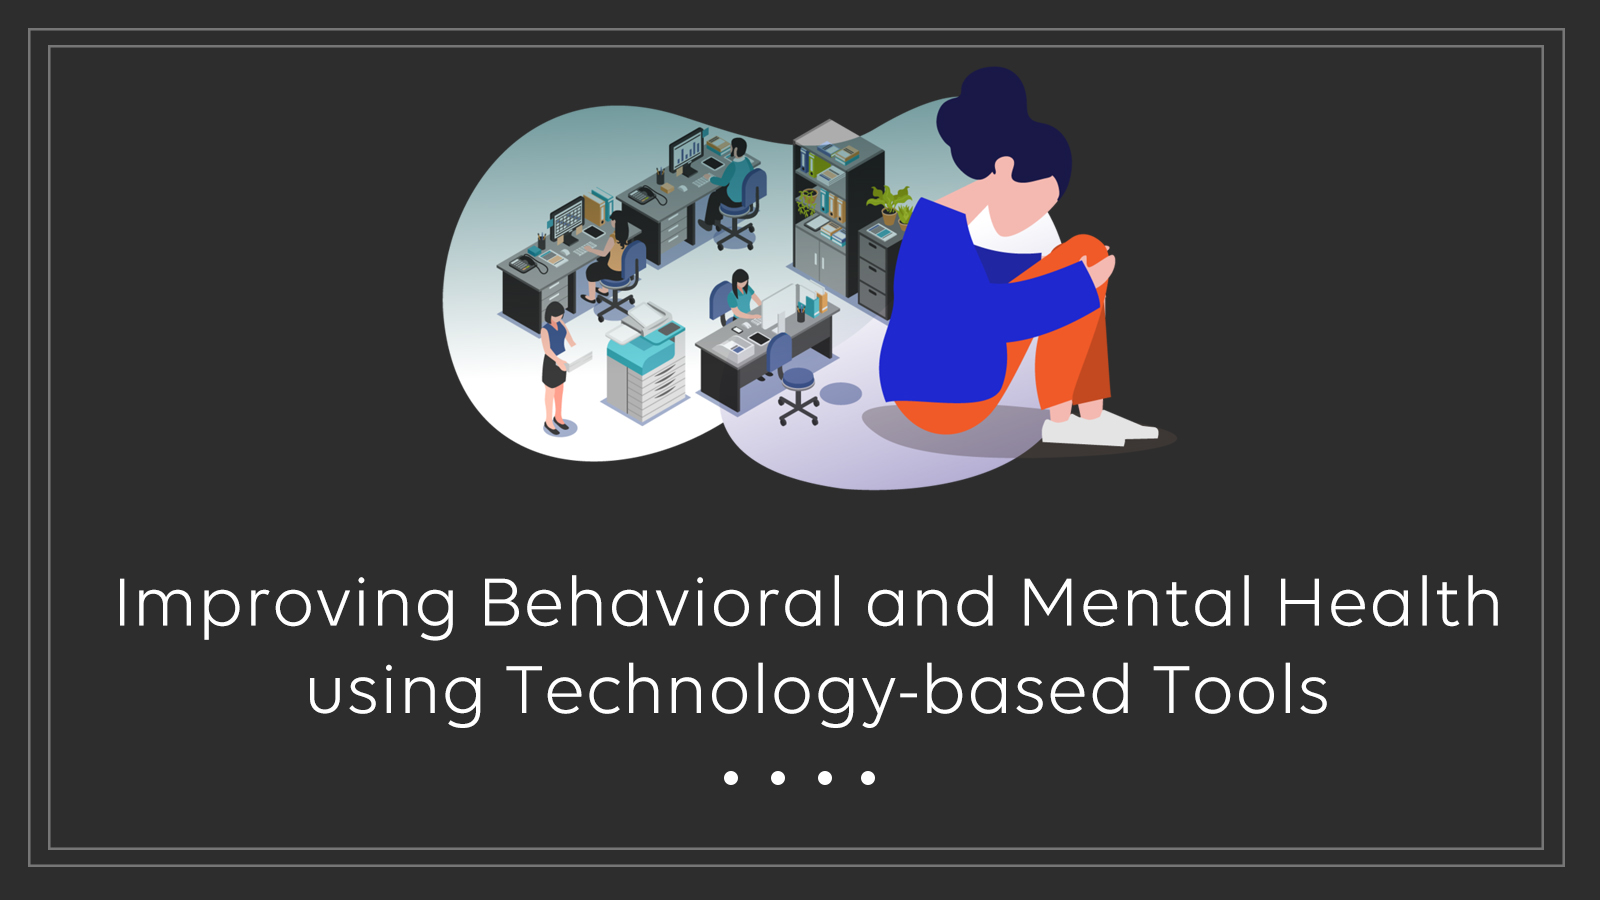 Improving behavioral and Mental Health using Technology